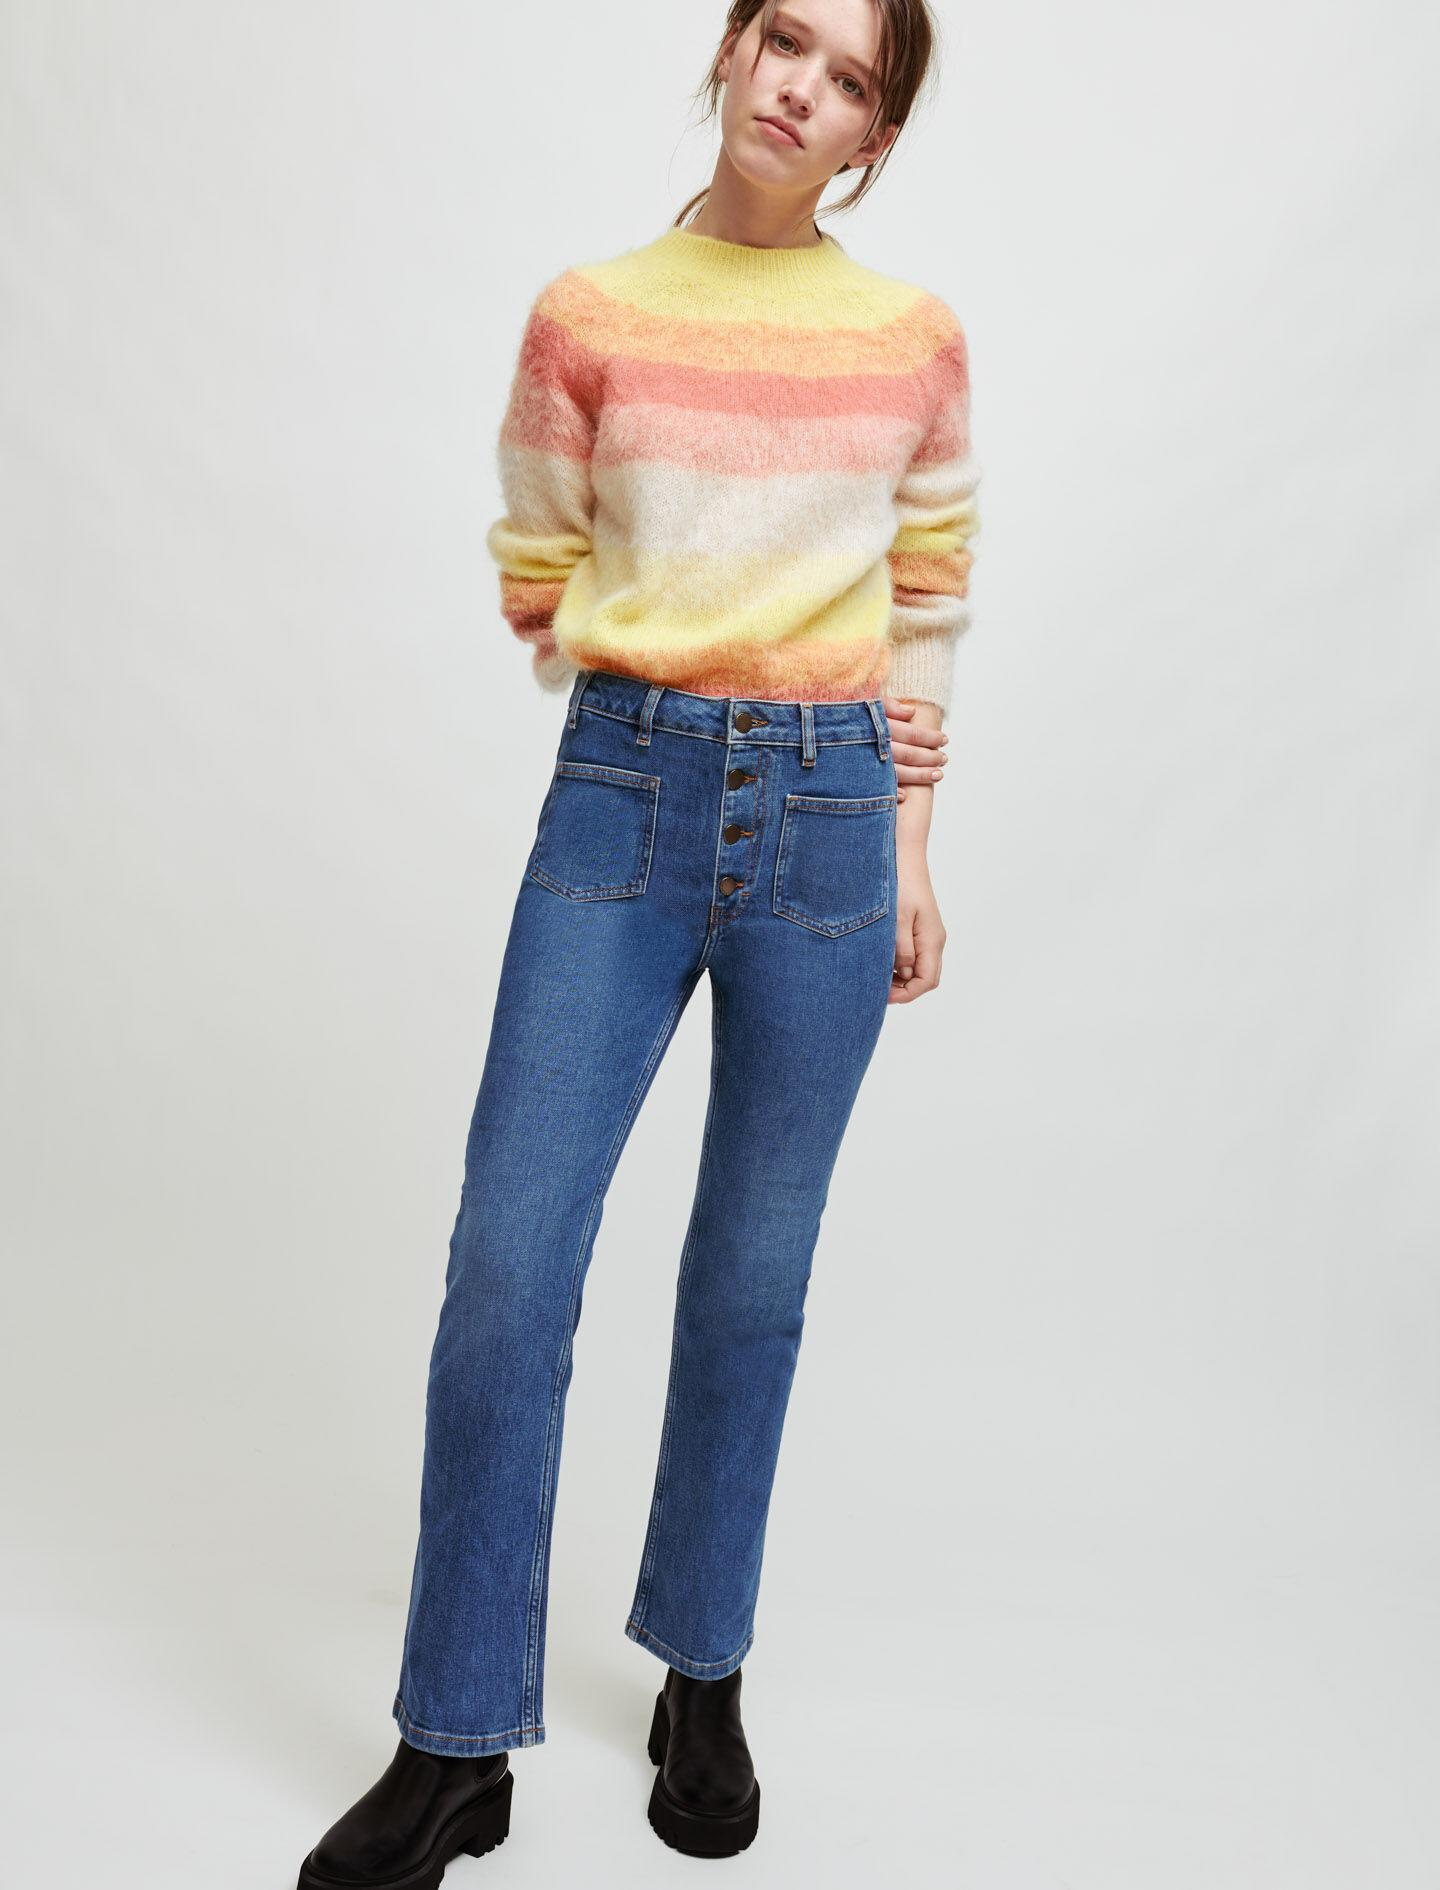 DOUBLE-POCKET JEANS WITH A SLIGHT FLARE